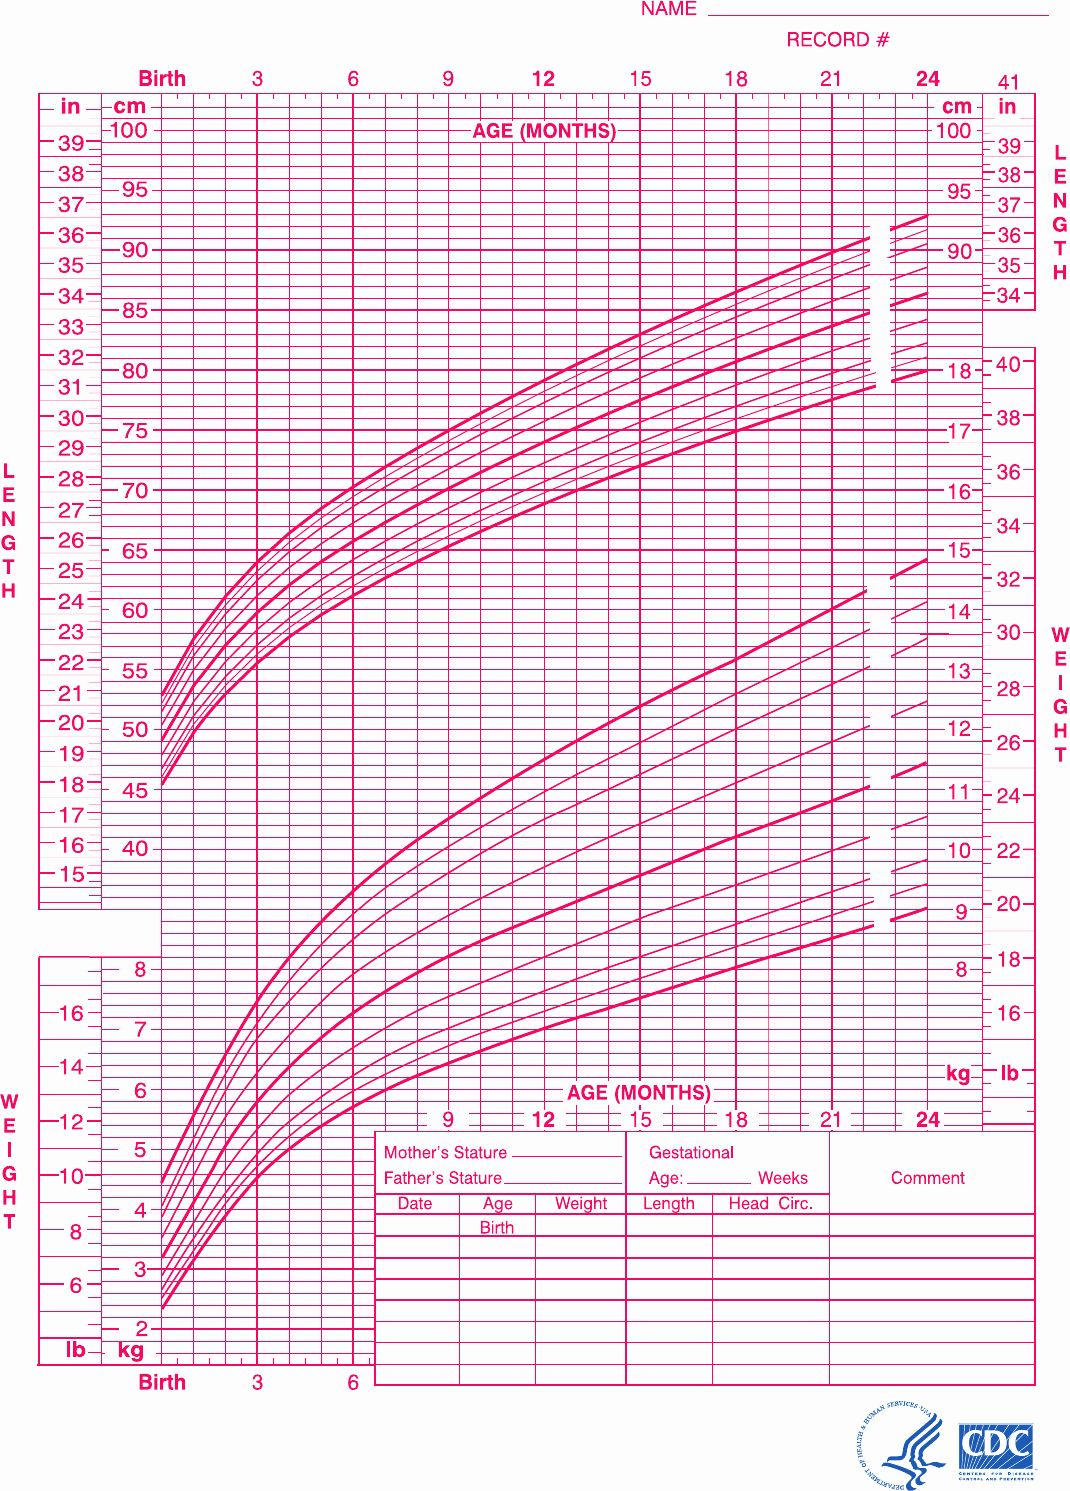 Baby Girl Growth Chart New Download Baby Girl Growth Chart For Birth To 24 Months For Baby Girl Growth Chart Growth Chart Pediatric Growth Chart